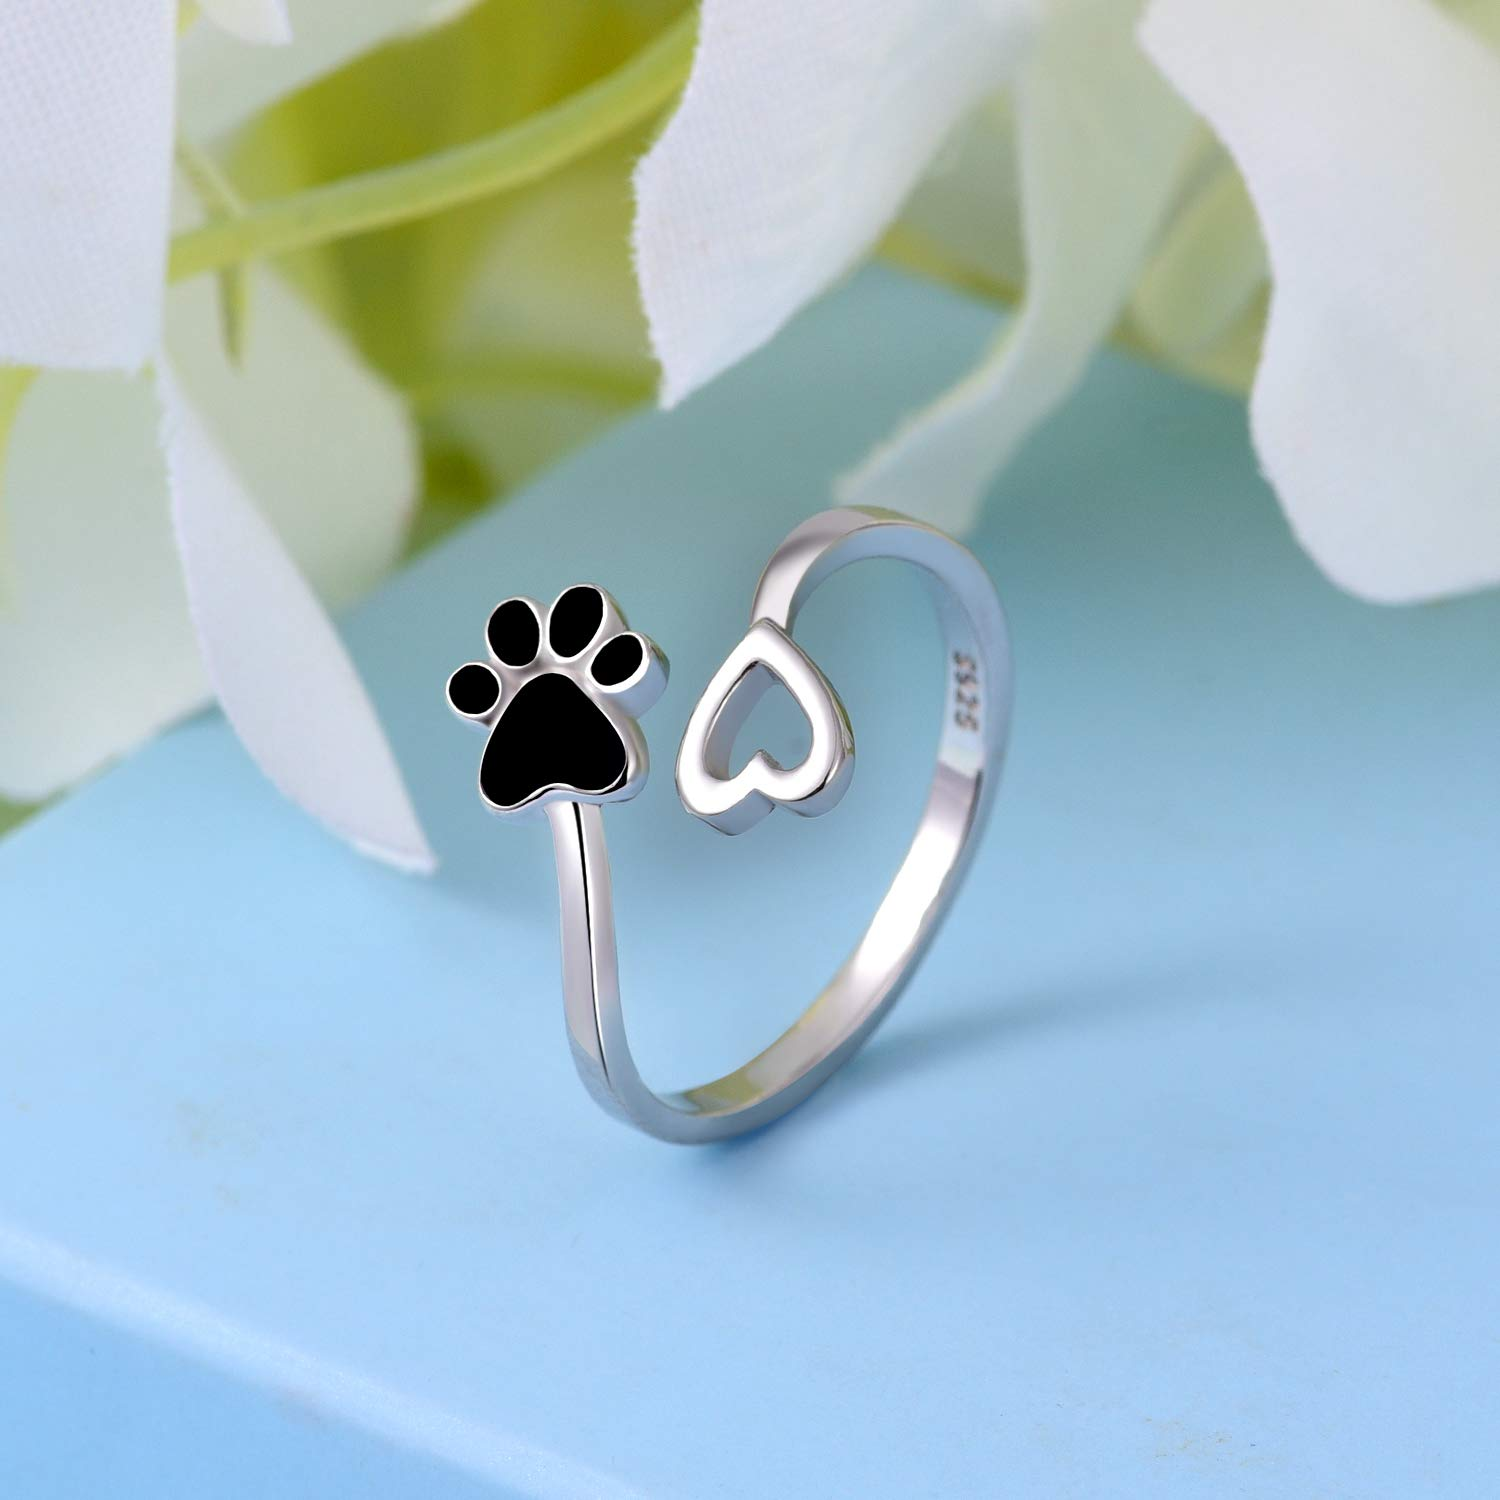 ACJFA 925 Sterling Silver Paw Print Love Heart Ring Adjustable Wrap Open Rings Jewelry for Pet Dog Cat by ACJFA (Image #4)